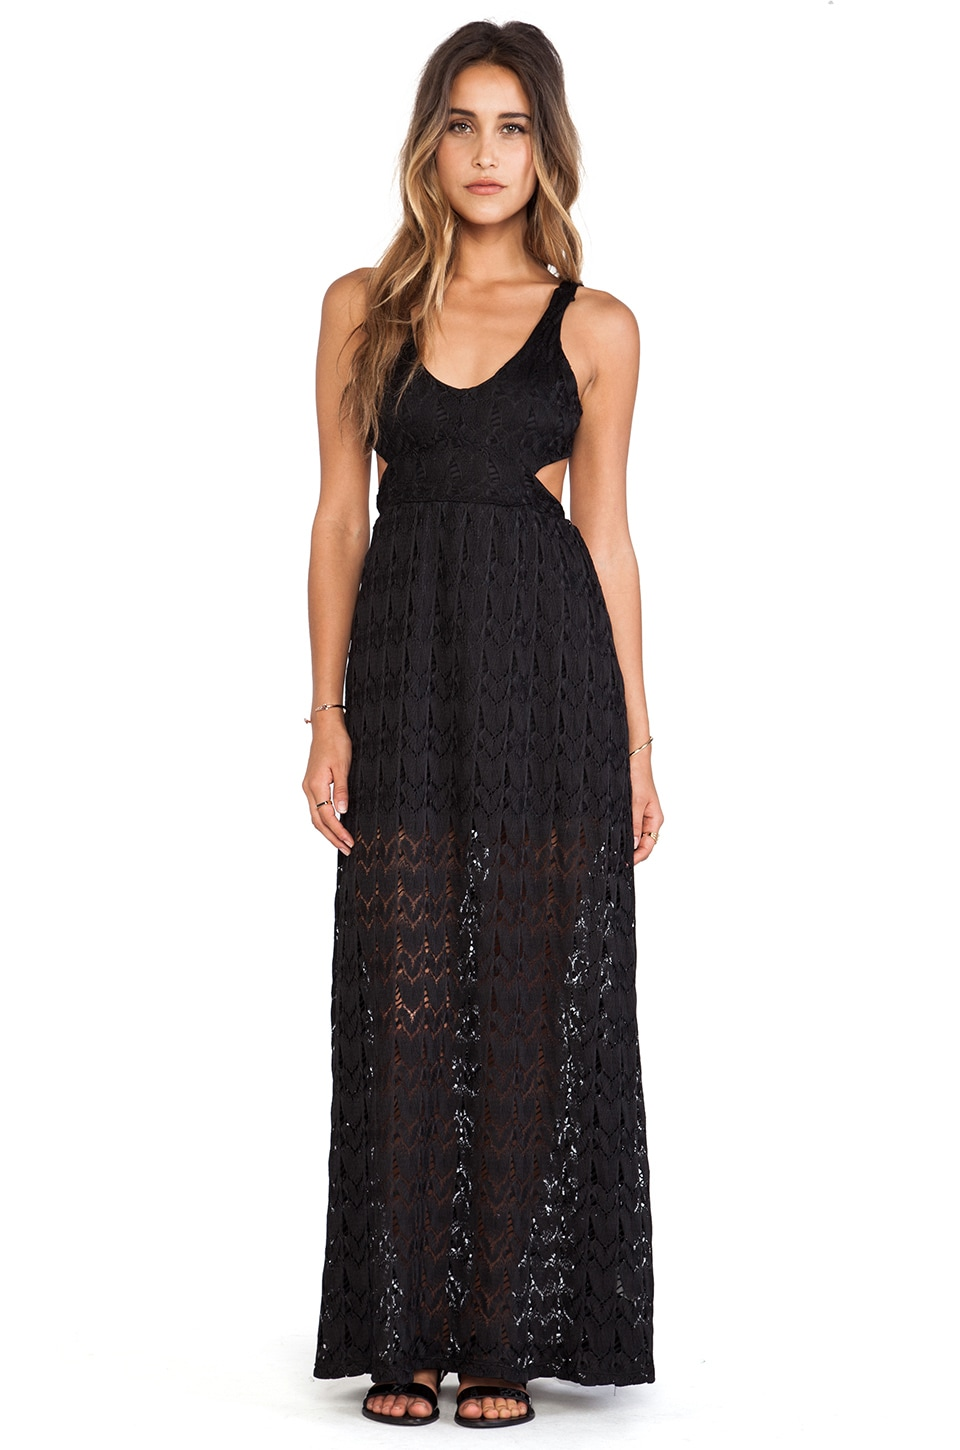 Surf Gypsy Crochet Open Back Maxi Dress in Black